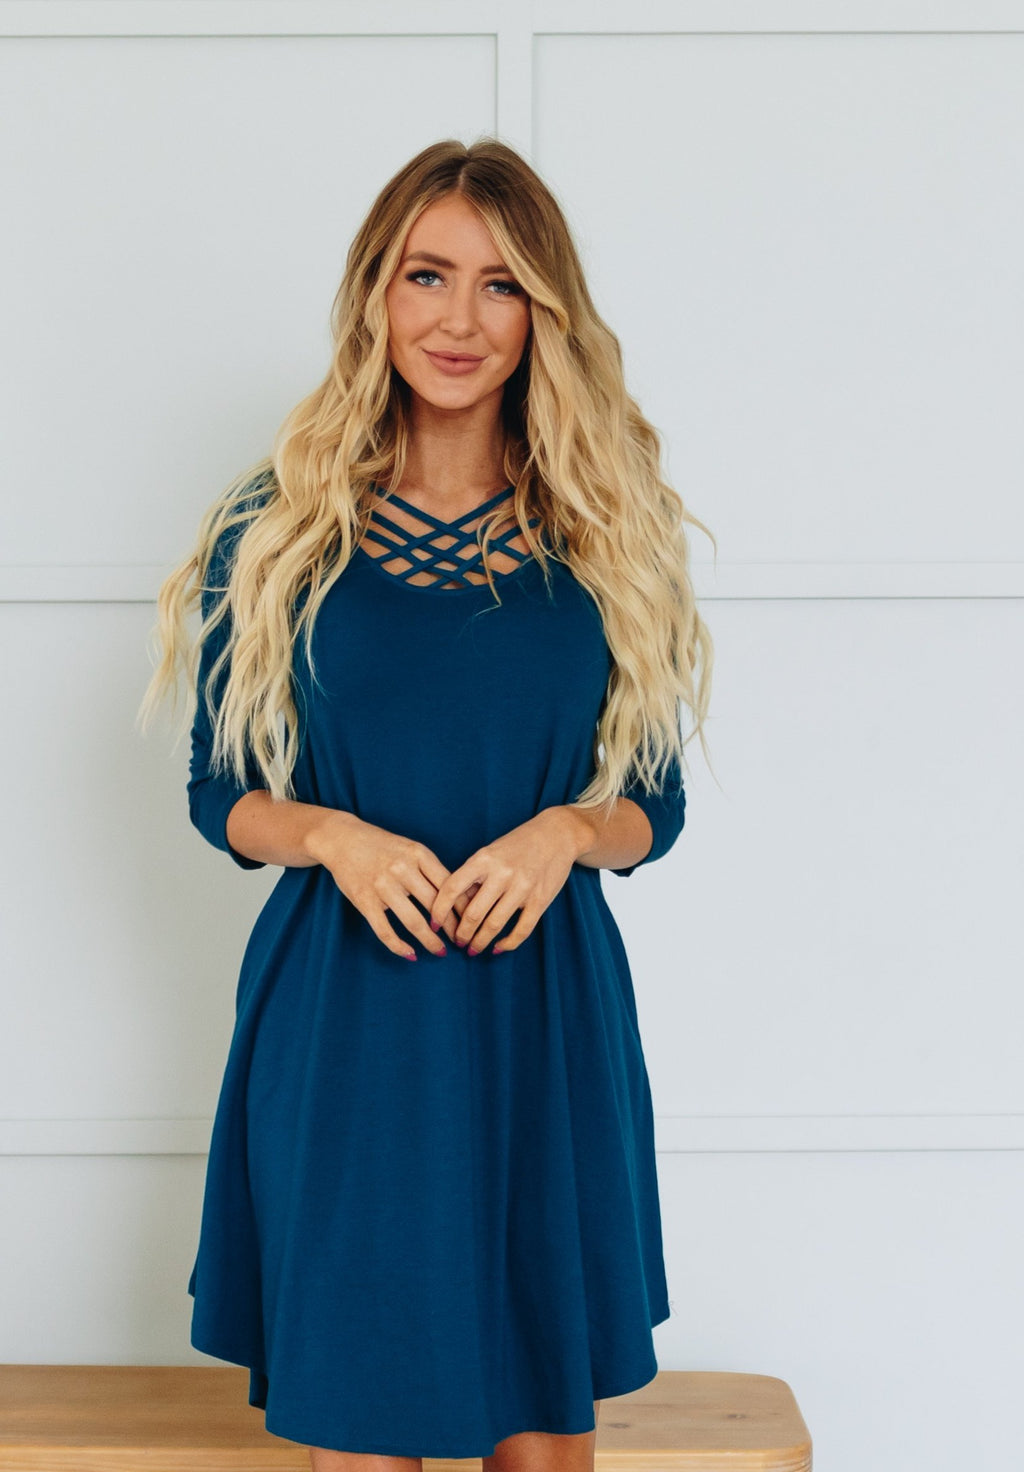 Lattice Swing Dress with Pockets - More Colors